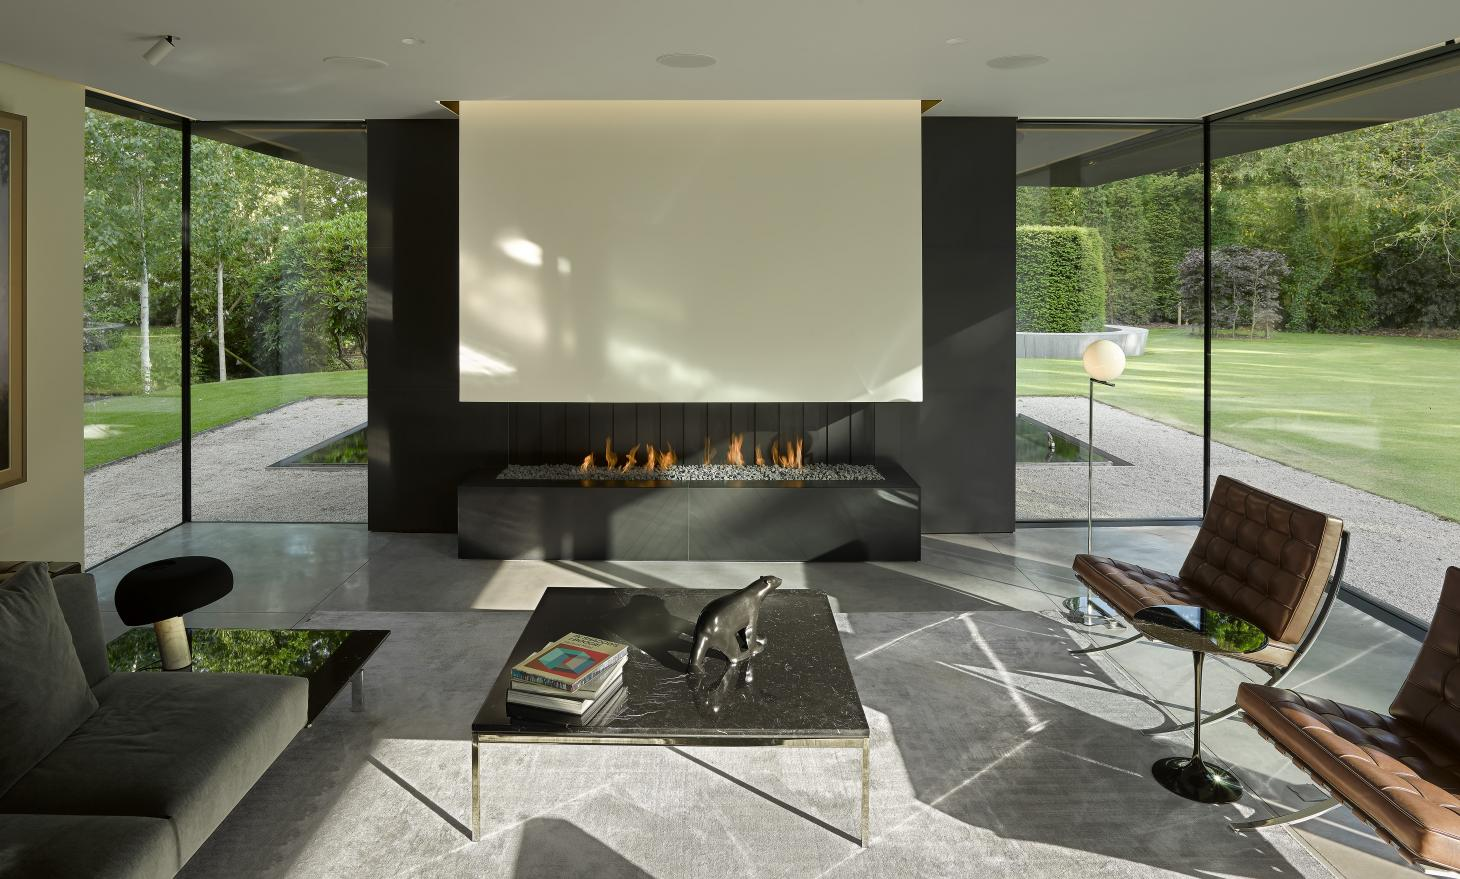 Winter House's impressive main formal living space enclosed in glass